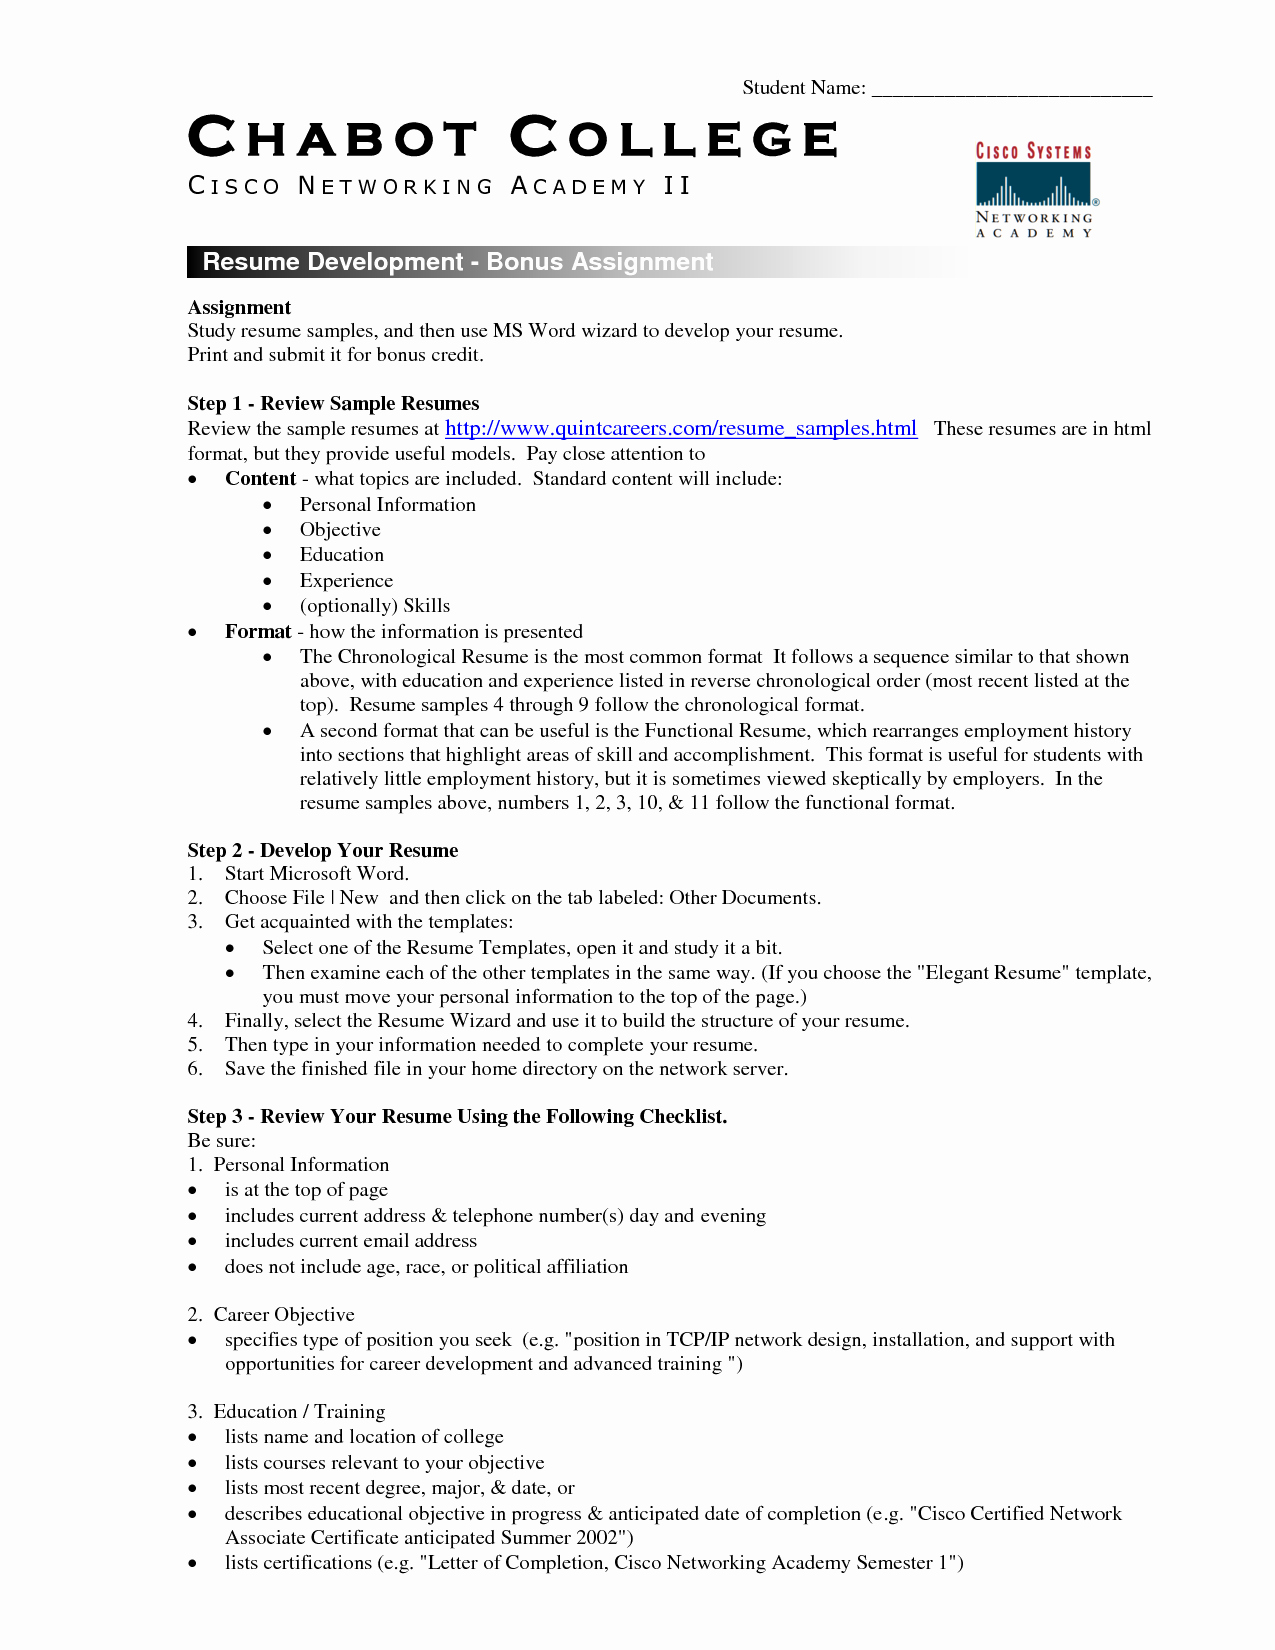 Ms Word Template for Resume Inspirational College Student Resume Template Microsoft Word